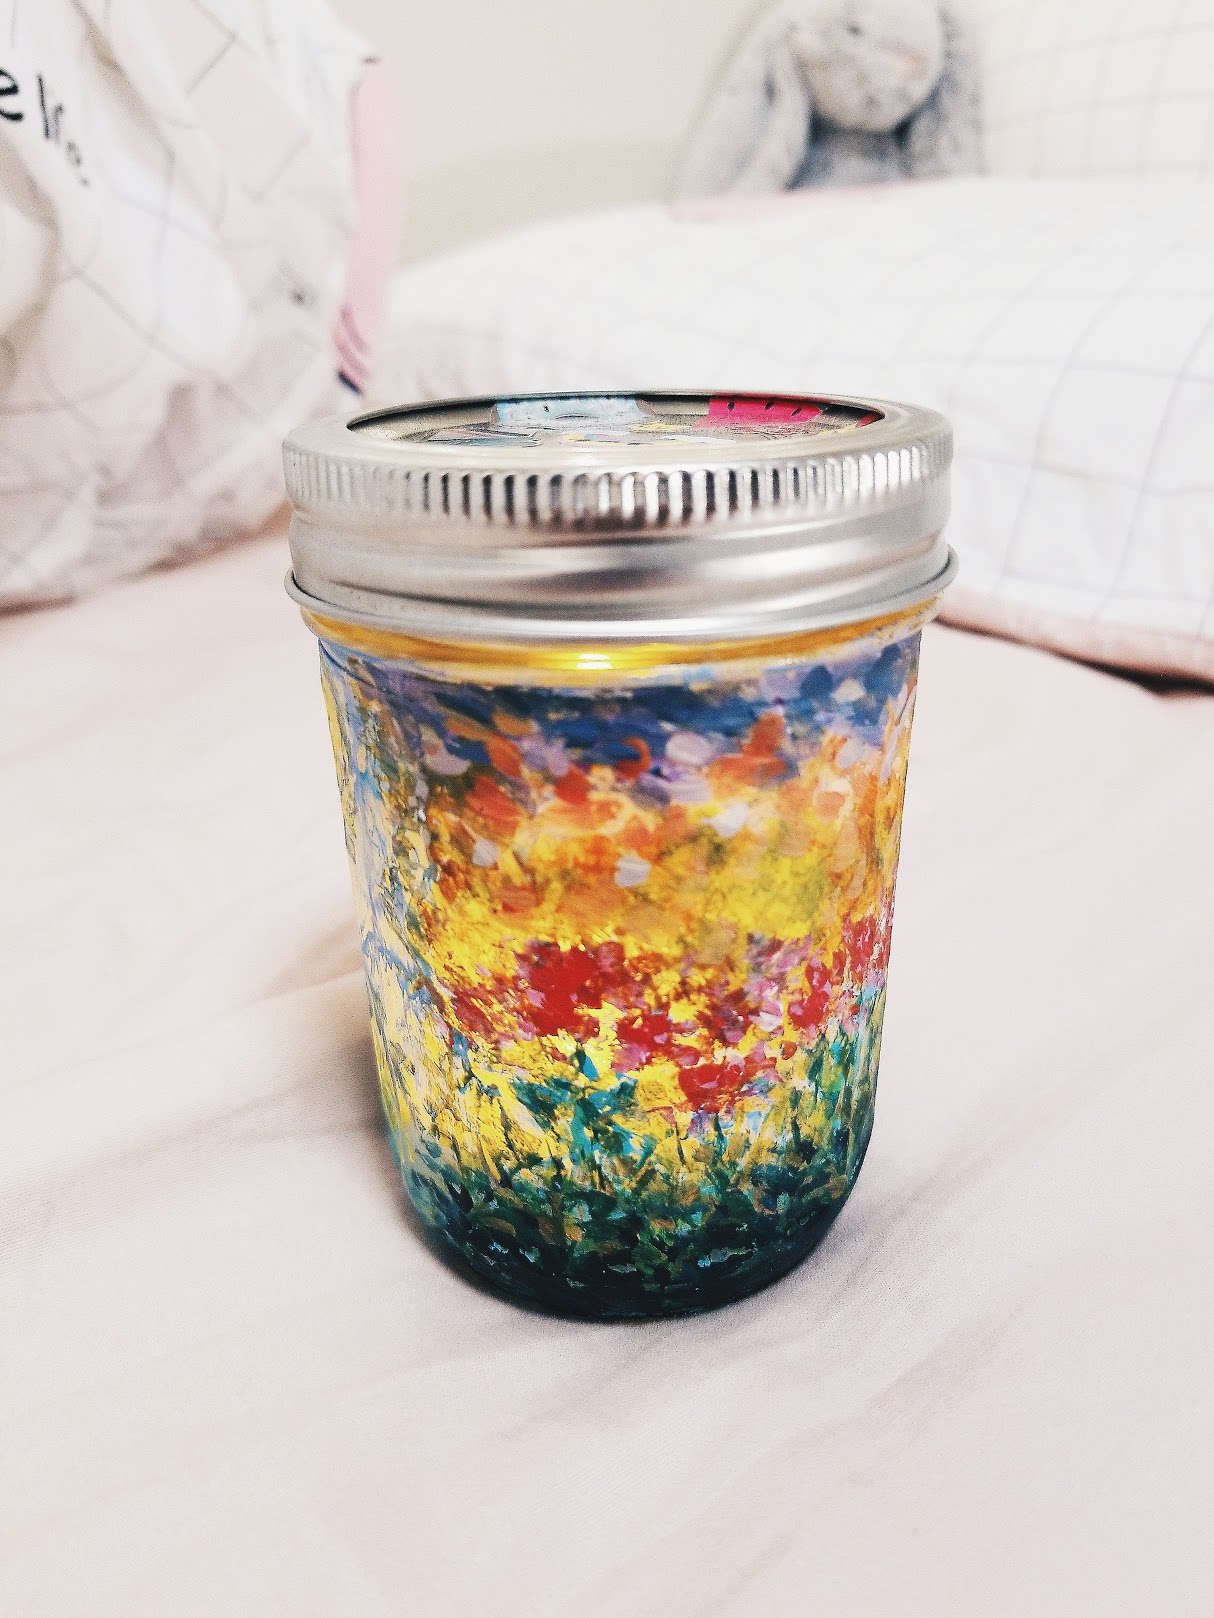 Painted Jar (2018)